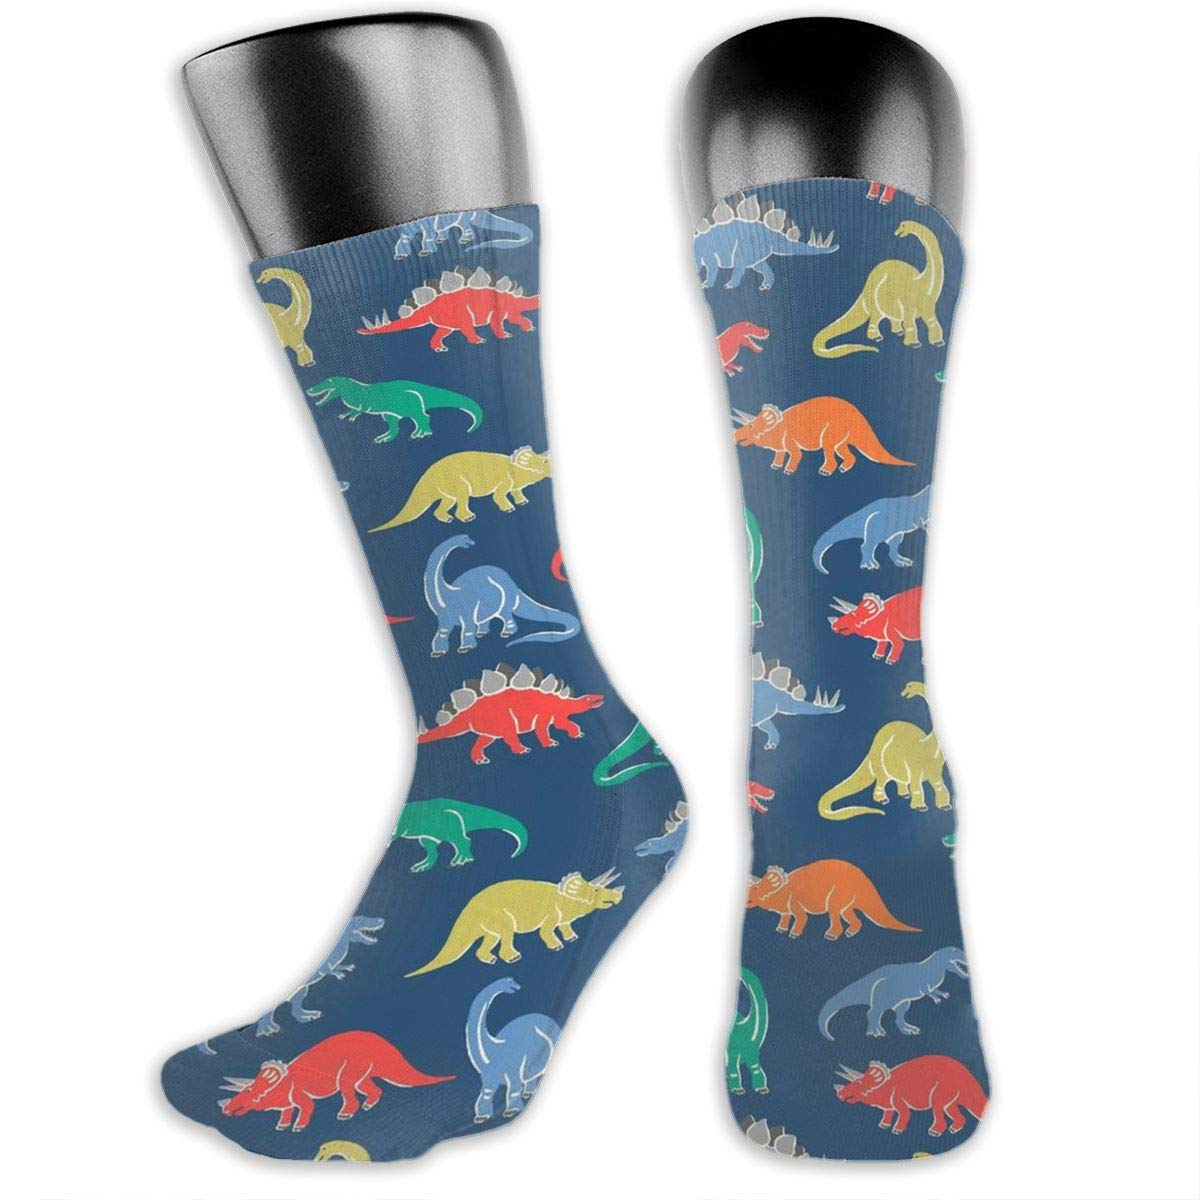 Dinosaurs Green Cotton Casual Colorful Fun Below Knee High Athletic Socks